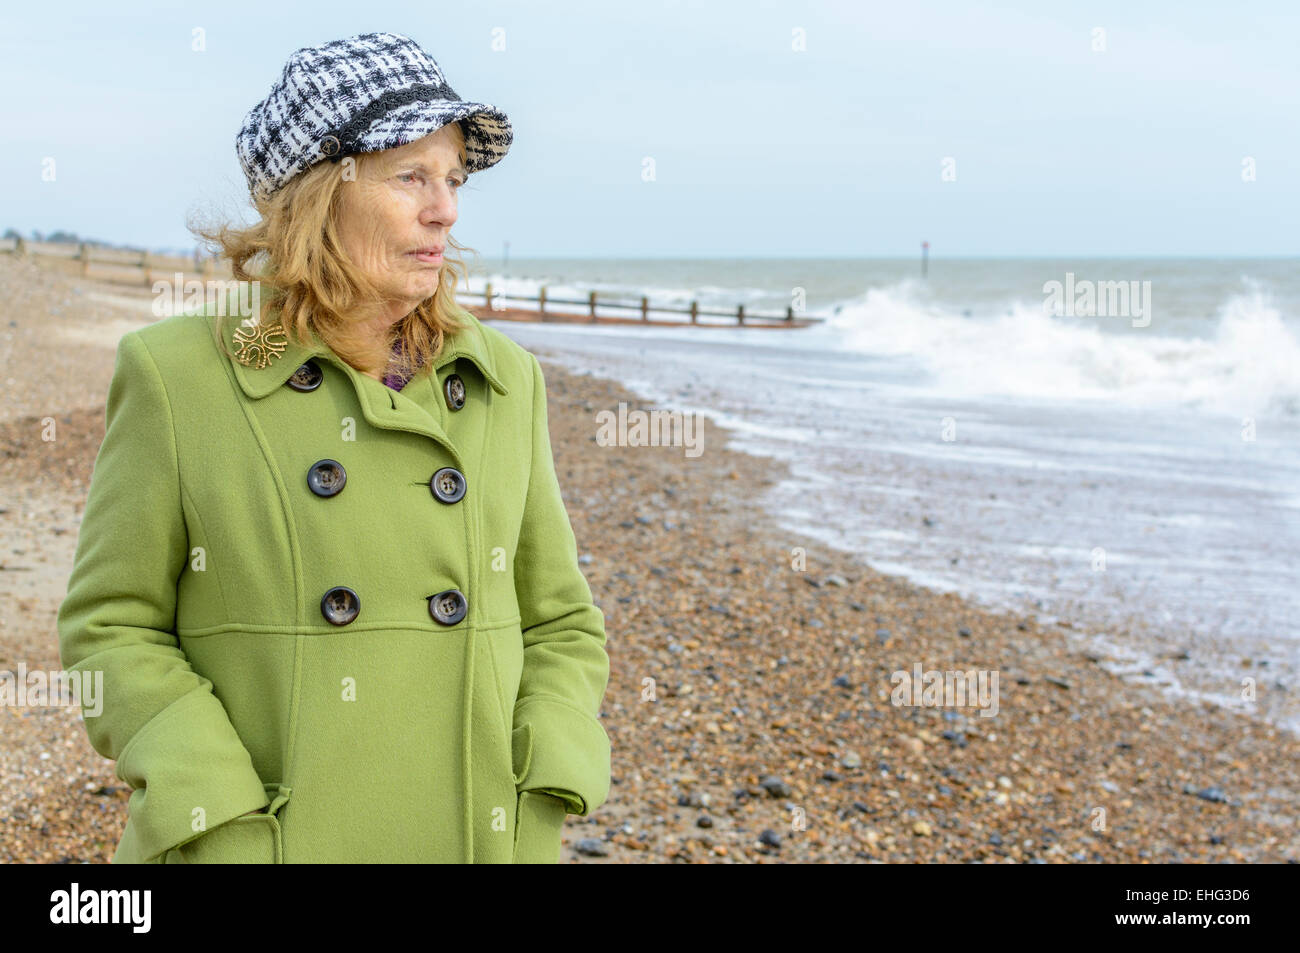 Elderly woman dressed warmly in the cold on a beach, looking out to sea. - Stock Image